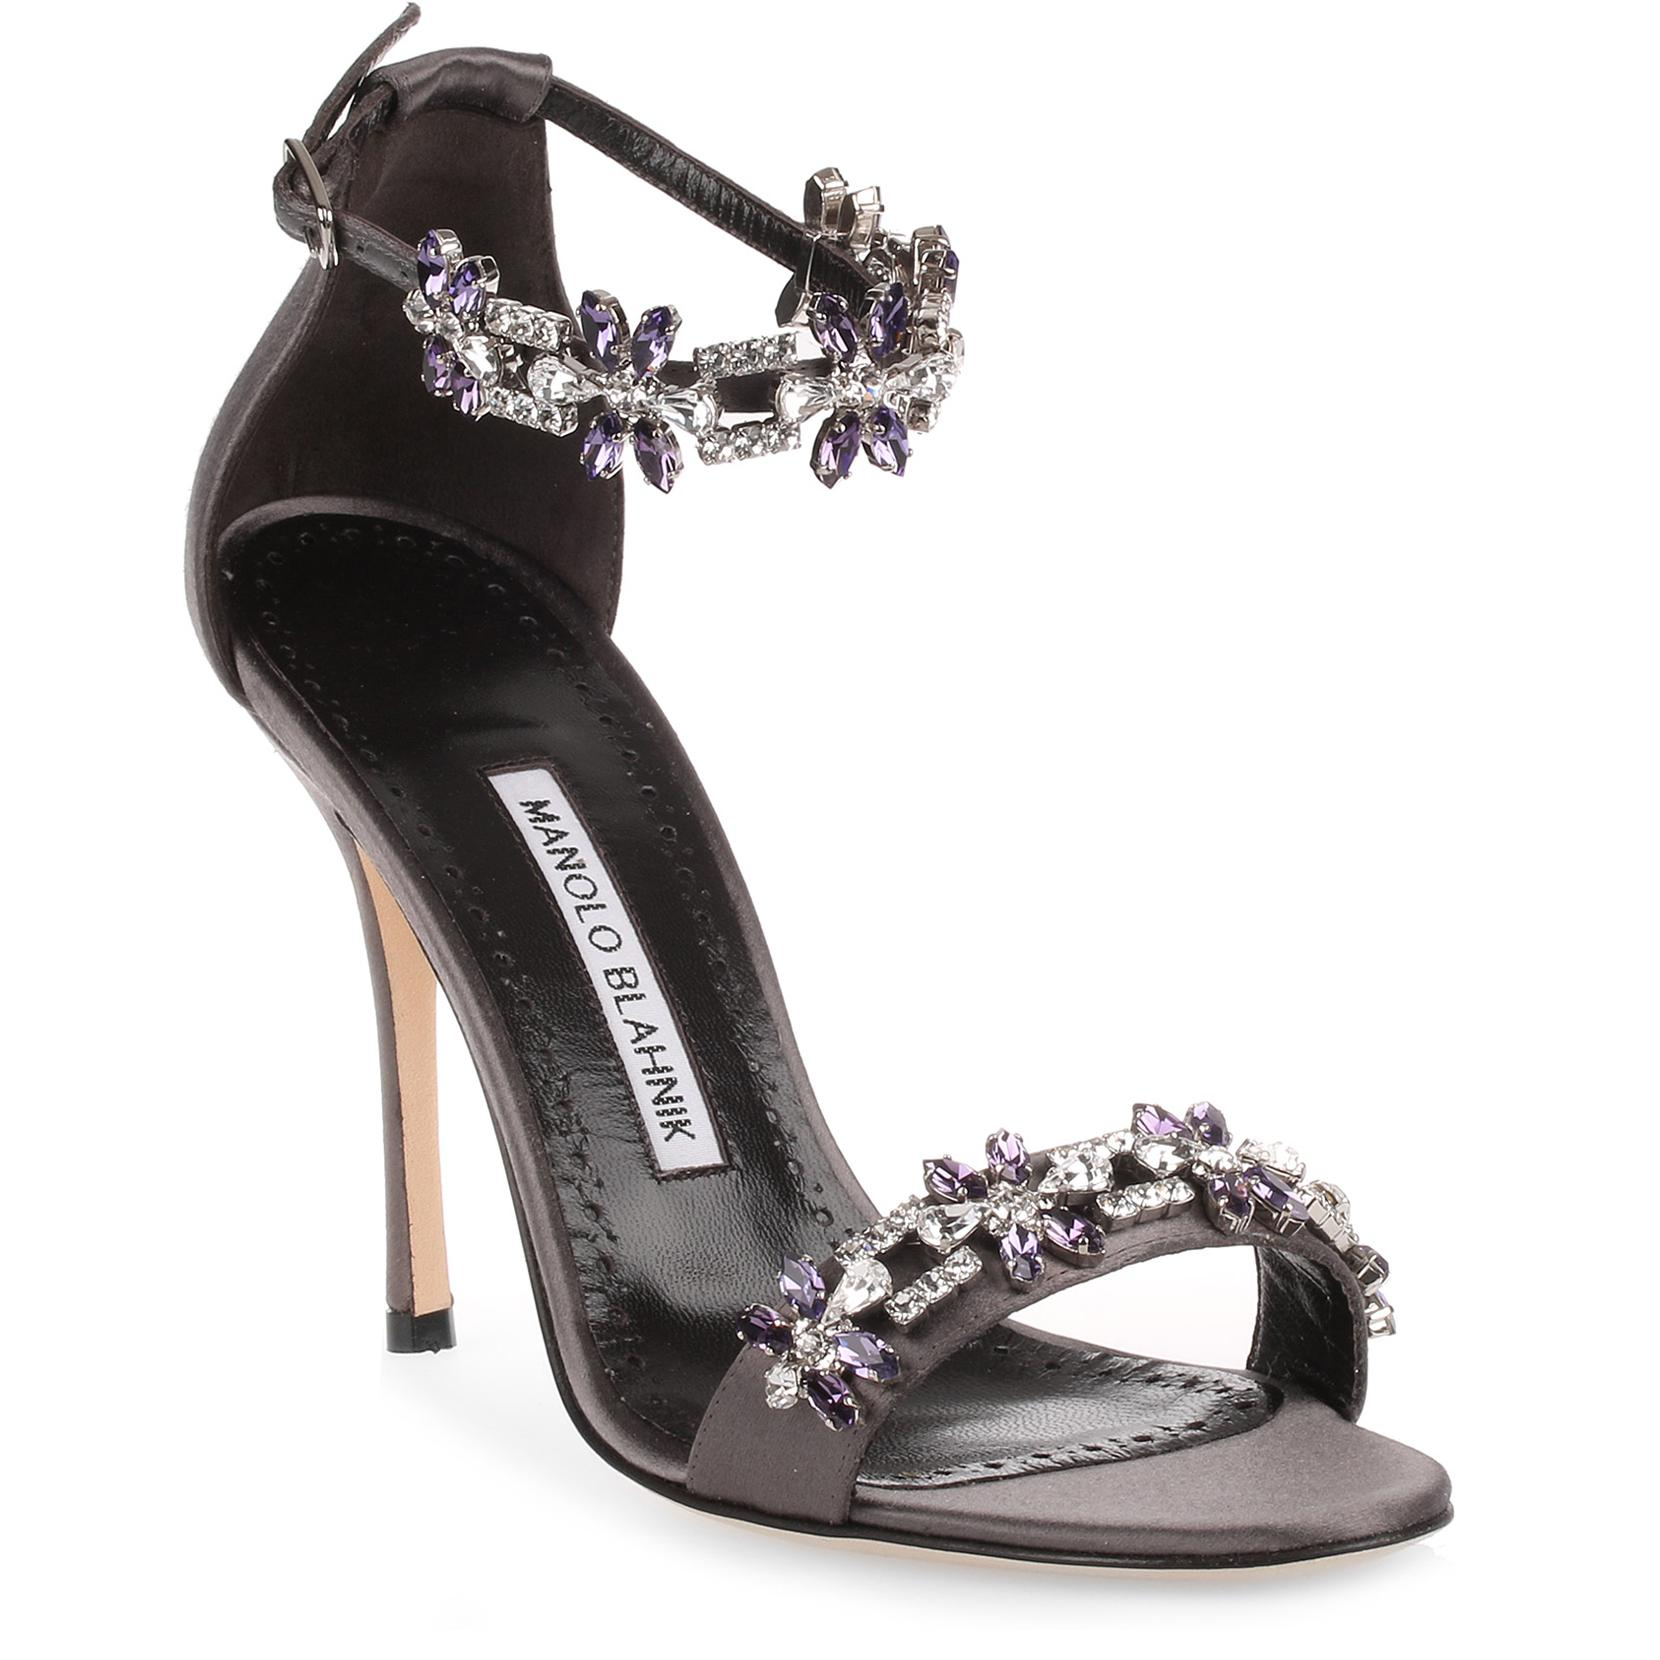 2863ce0a195 Manolo Blahnik Firaduo 105 Crystal-Embellished Satin Ankle-Strap Sandals In  Gray